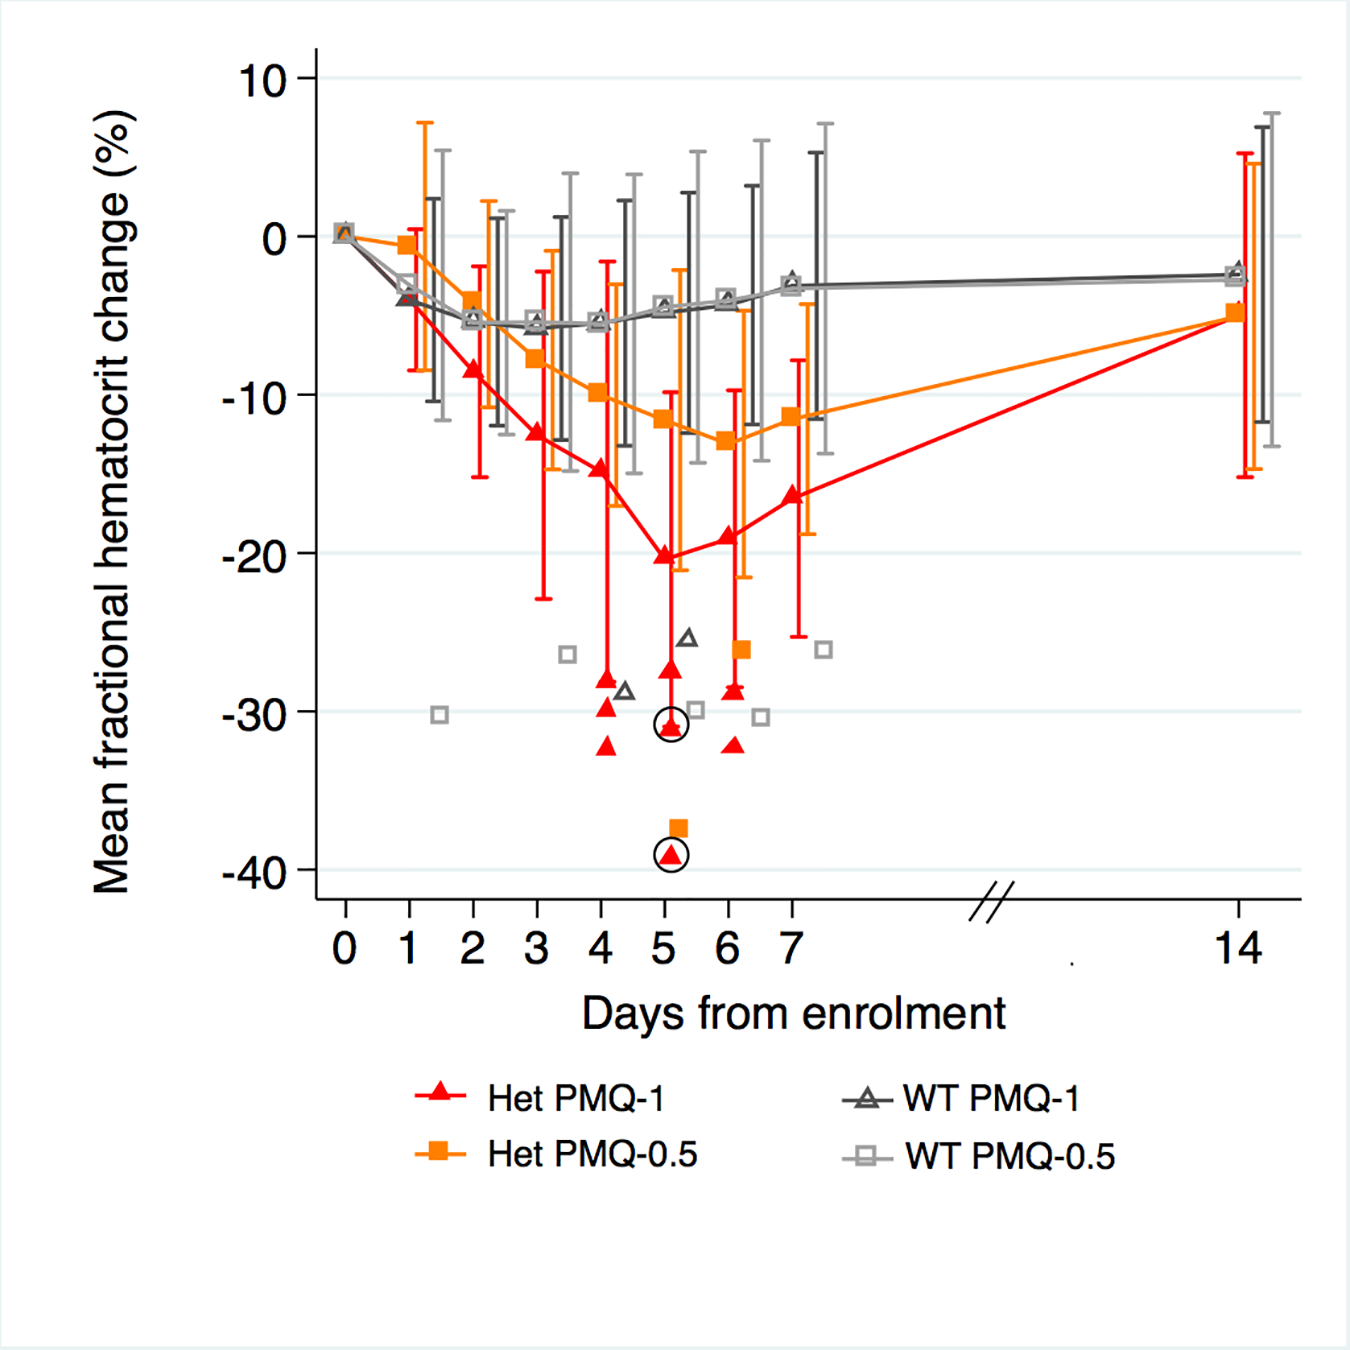 Mean fractional haematocrit changes over time in G6PD heterozygous and wild-type females taking PMQ-1 or PMQ-0.5.